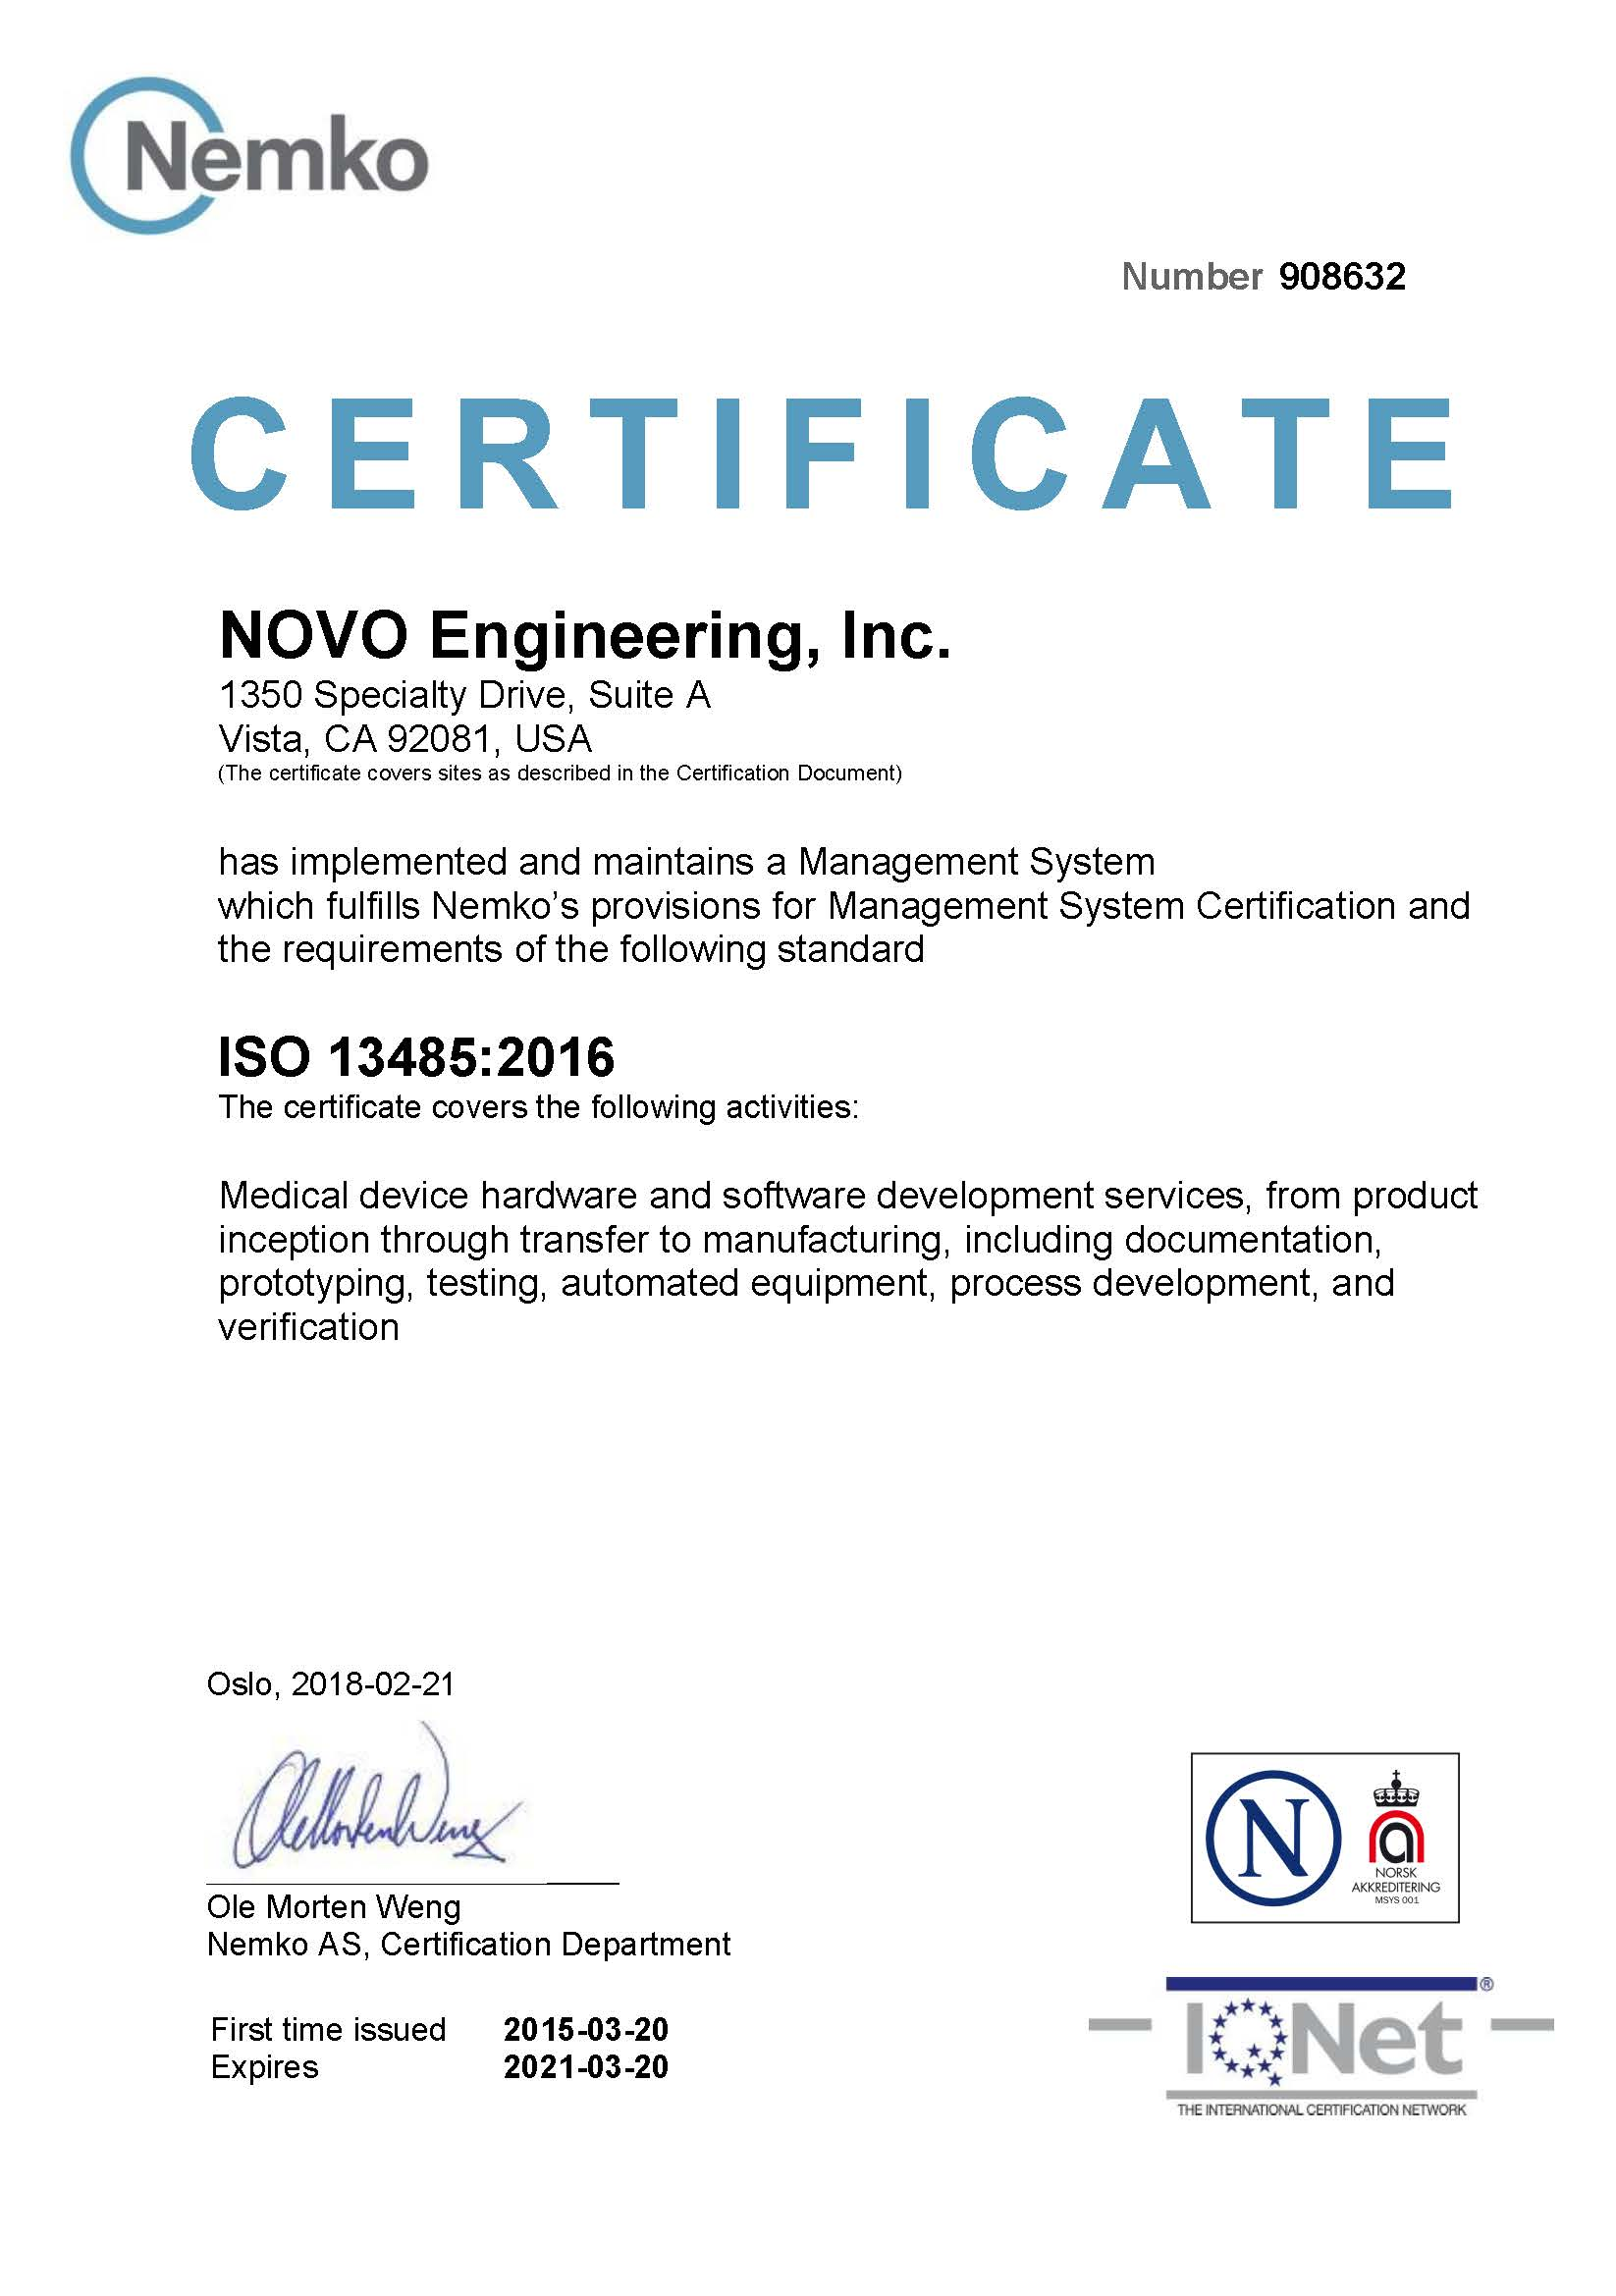 Management Systems Certificate ISO 13485:2016